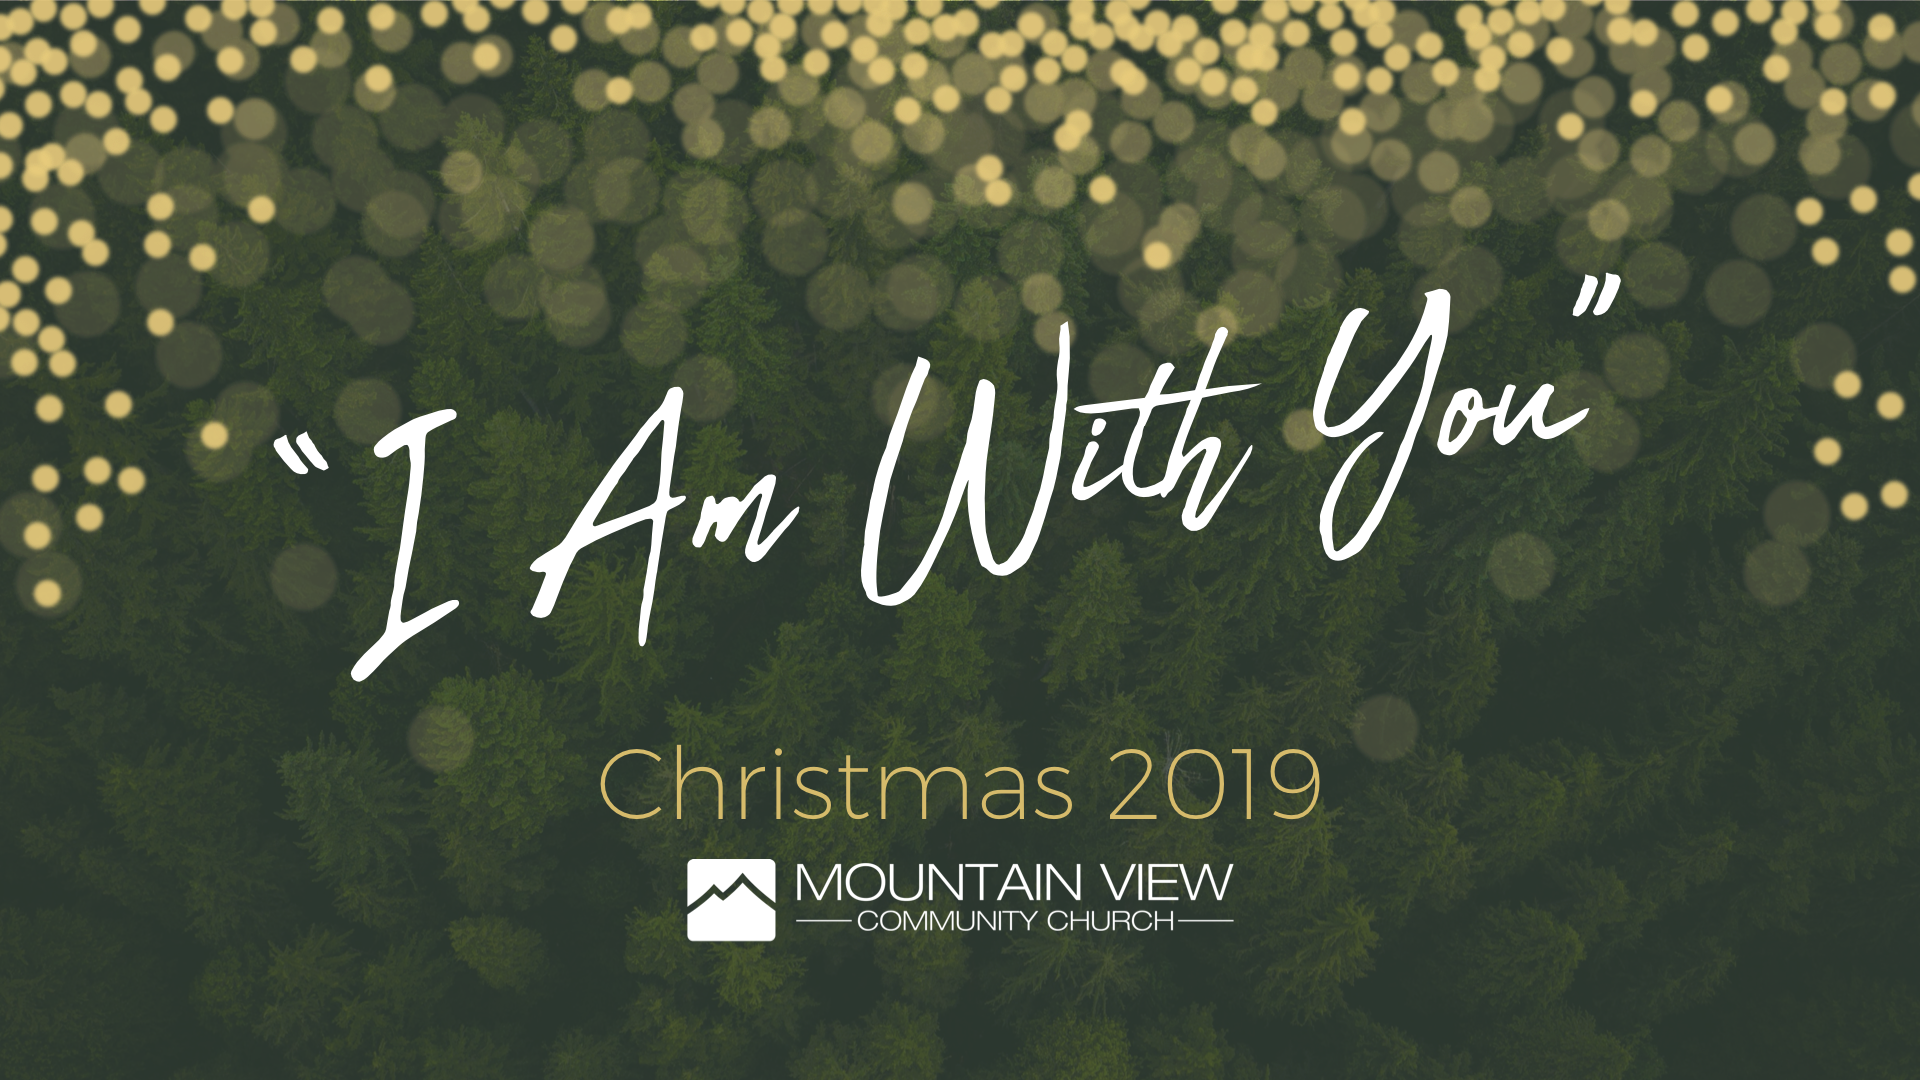 Christmas Eve Church Services Fort Collins 2020 Mountain View Community Church | Church in Fort Collins, CO